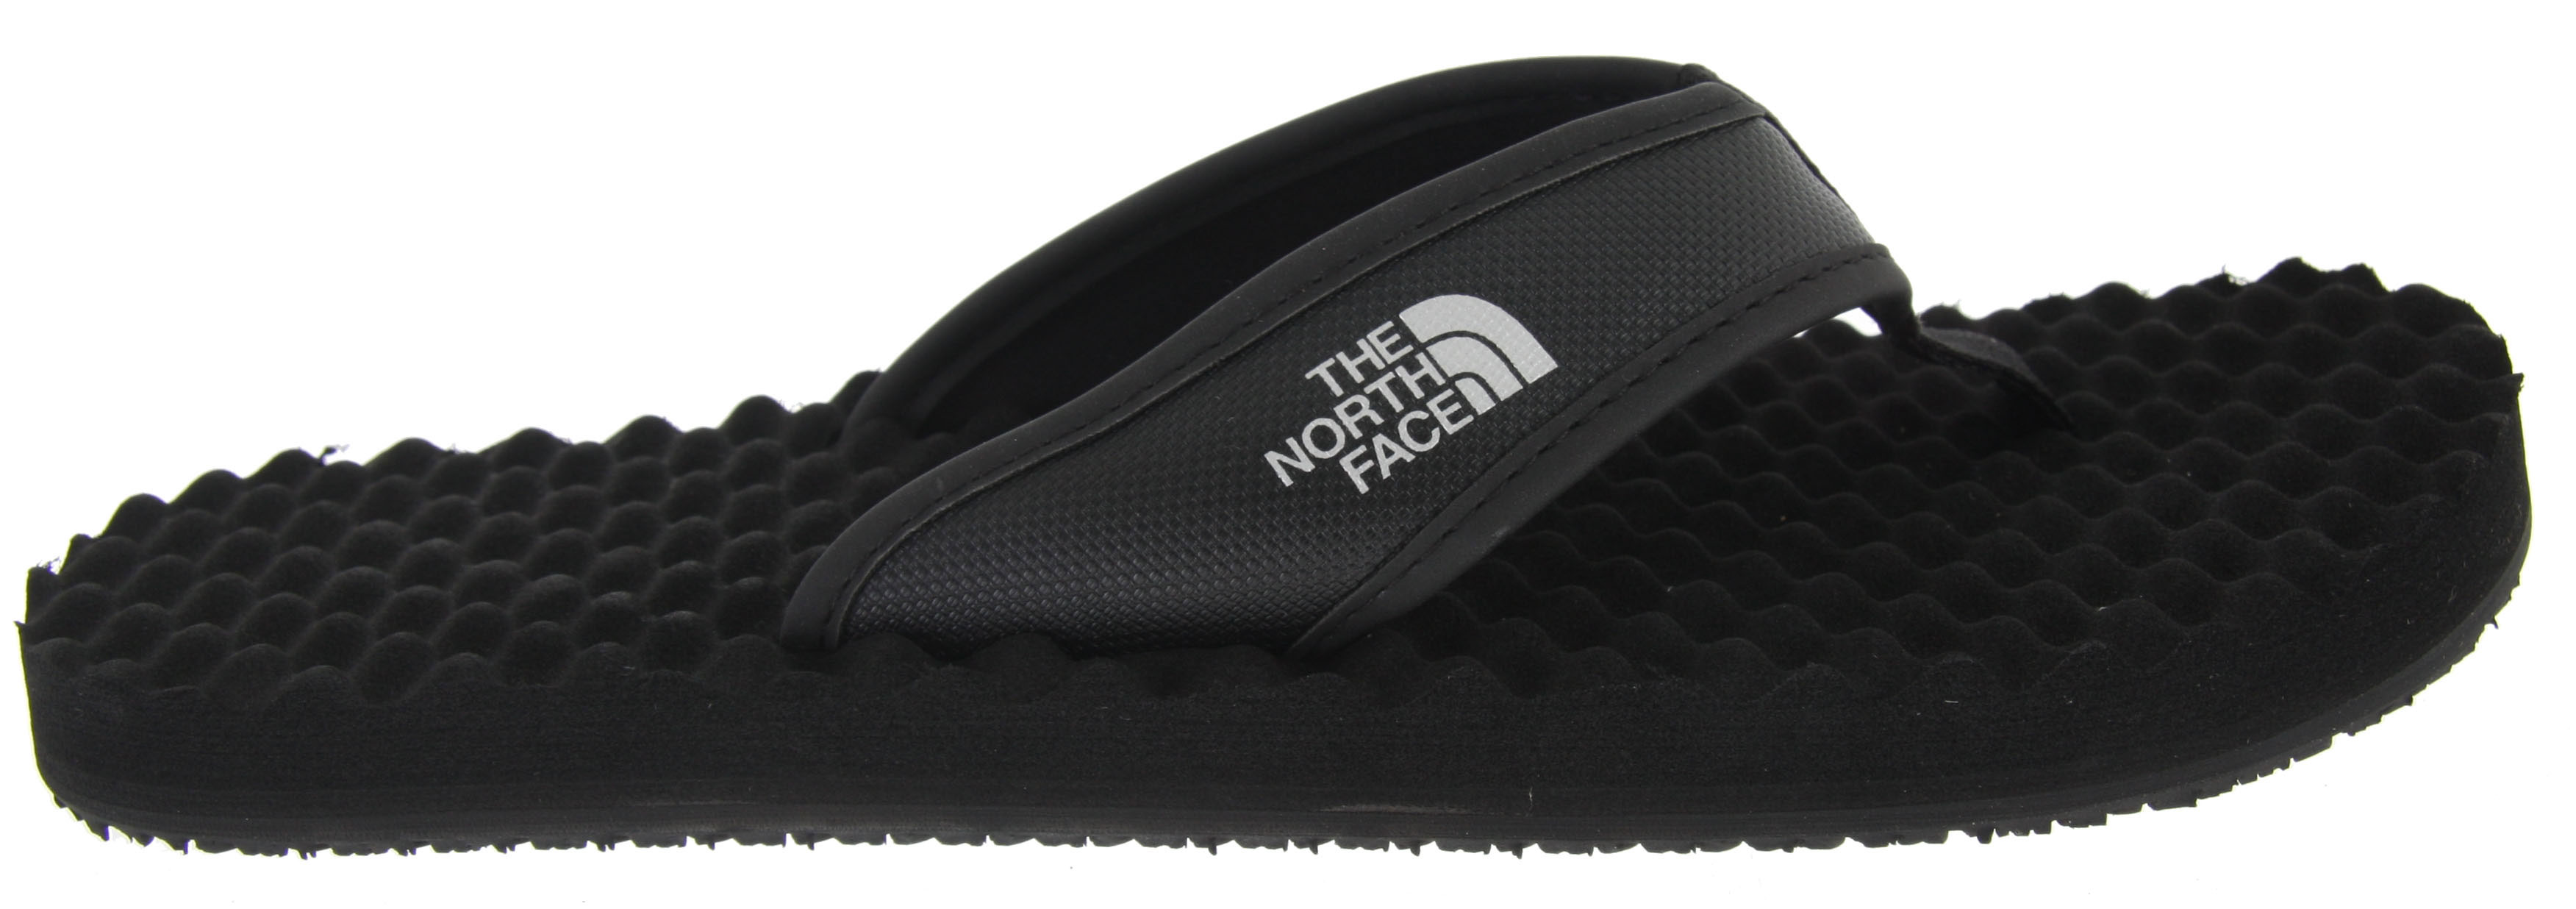 "Camp and Hike ""These are so comfortable you won't want to leave base camp!"" -Cedar Wright, The North Face Athlete, Rock Climber    The Base Camp Flip-Flop is sure to outlast even your most rambunctious outings. Designed with the same material as our hyper-durable expedition equipment, the straps on these sandals offer relentless support. Coupled with an ultra-cushy egg crate-inspired footbed, if your feet could smile - they would.Key Features of the The North Face Base Camp Flip Flop Sandals: Inspired by our hyper-durable expedition bags, a lightweight-yet-rugged sandal fit for apres mountain or day-to-day wear and tear. PVC-free Hypalon strap with soft polyurethane (PU  binding and jersey lining Extra cushy EVA egg crate-inspired footbed with anatomical arch support Rubber outsole Imported - $20.95"